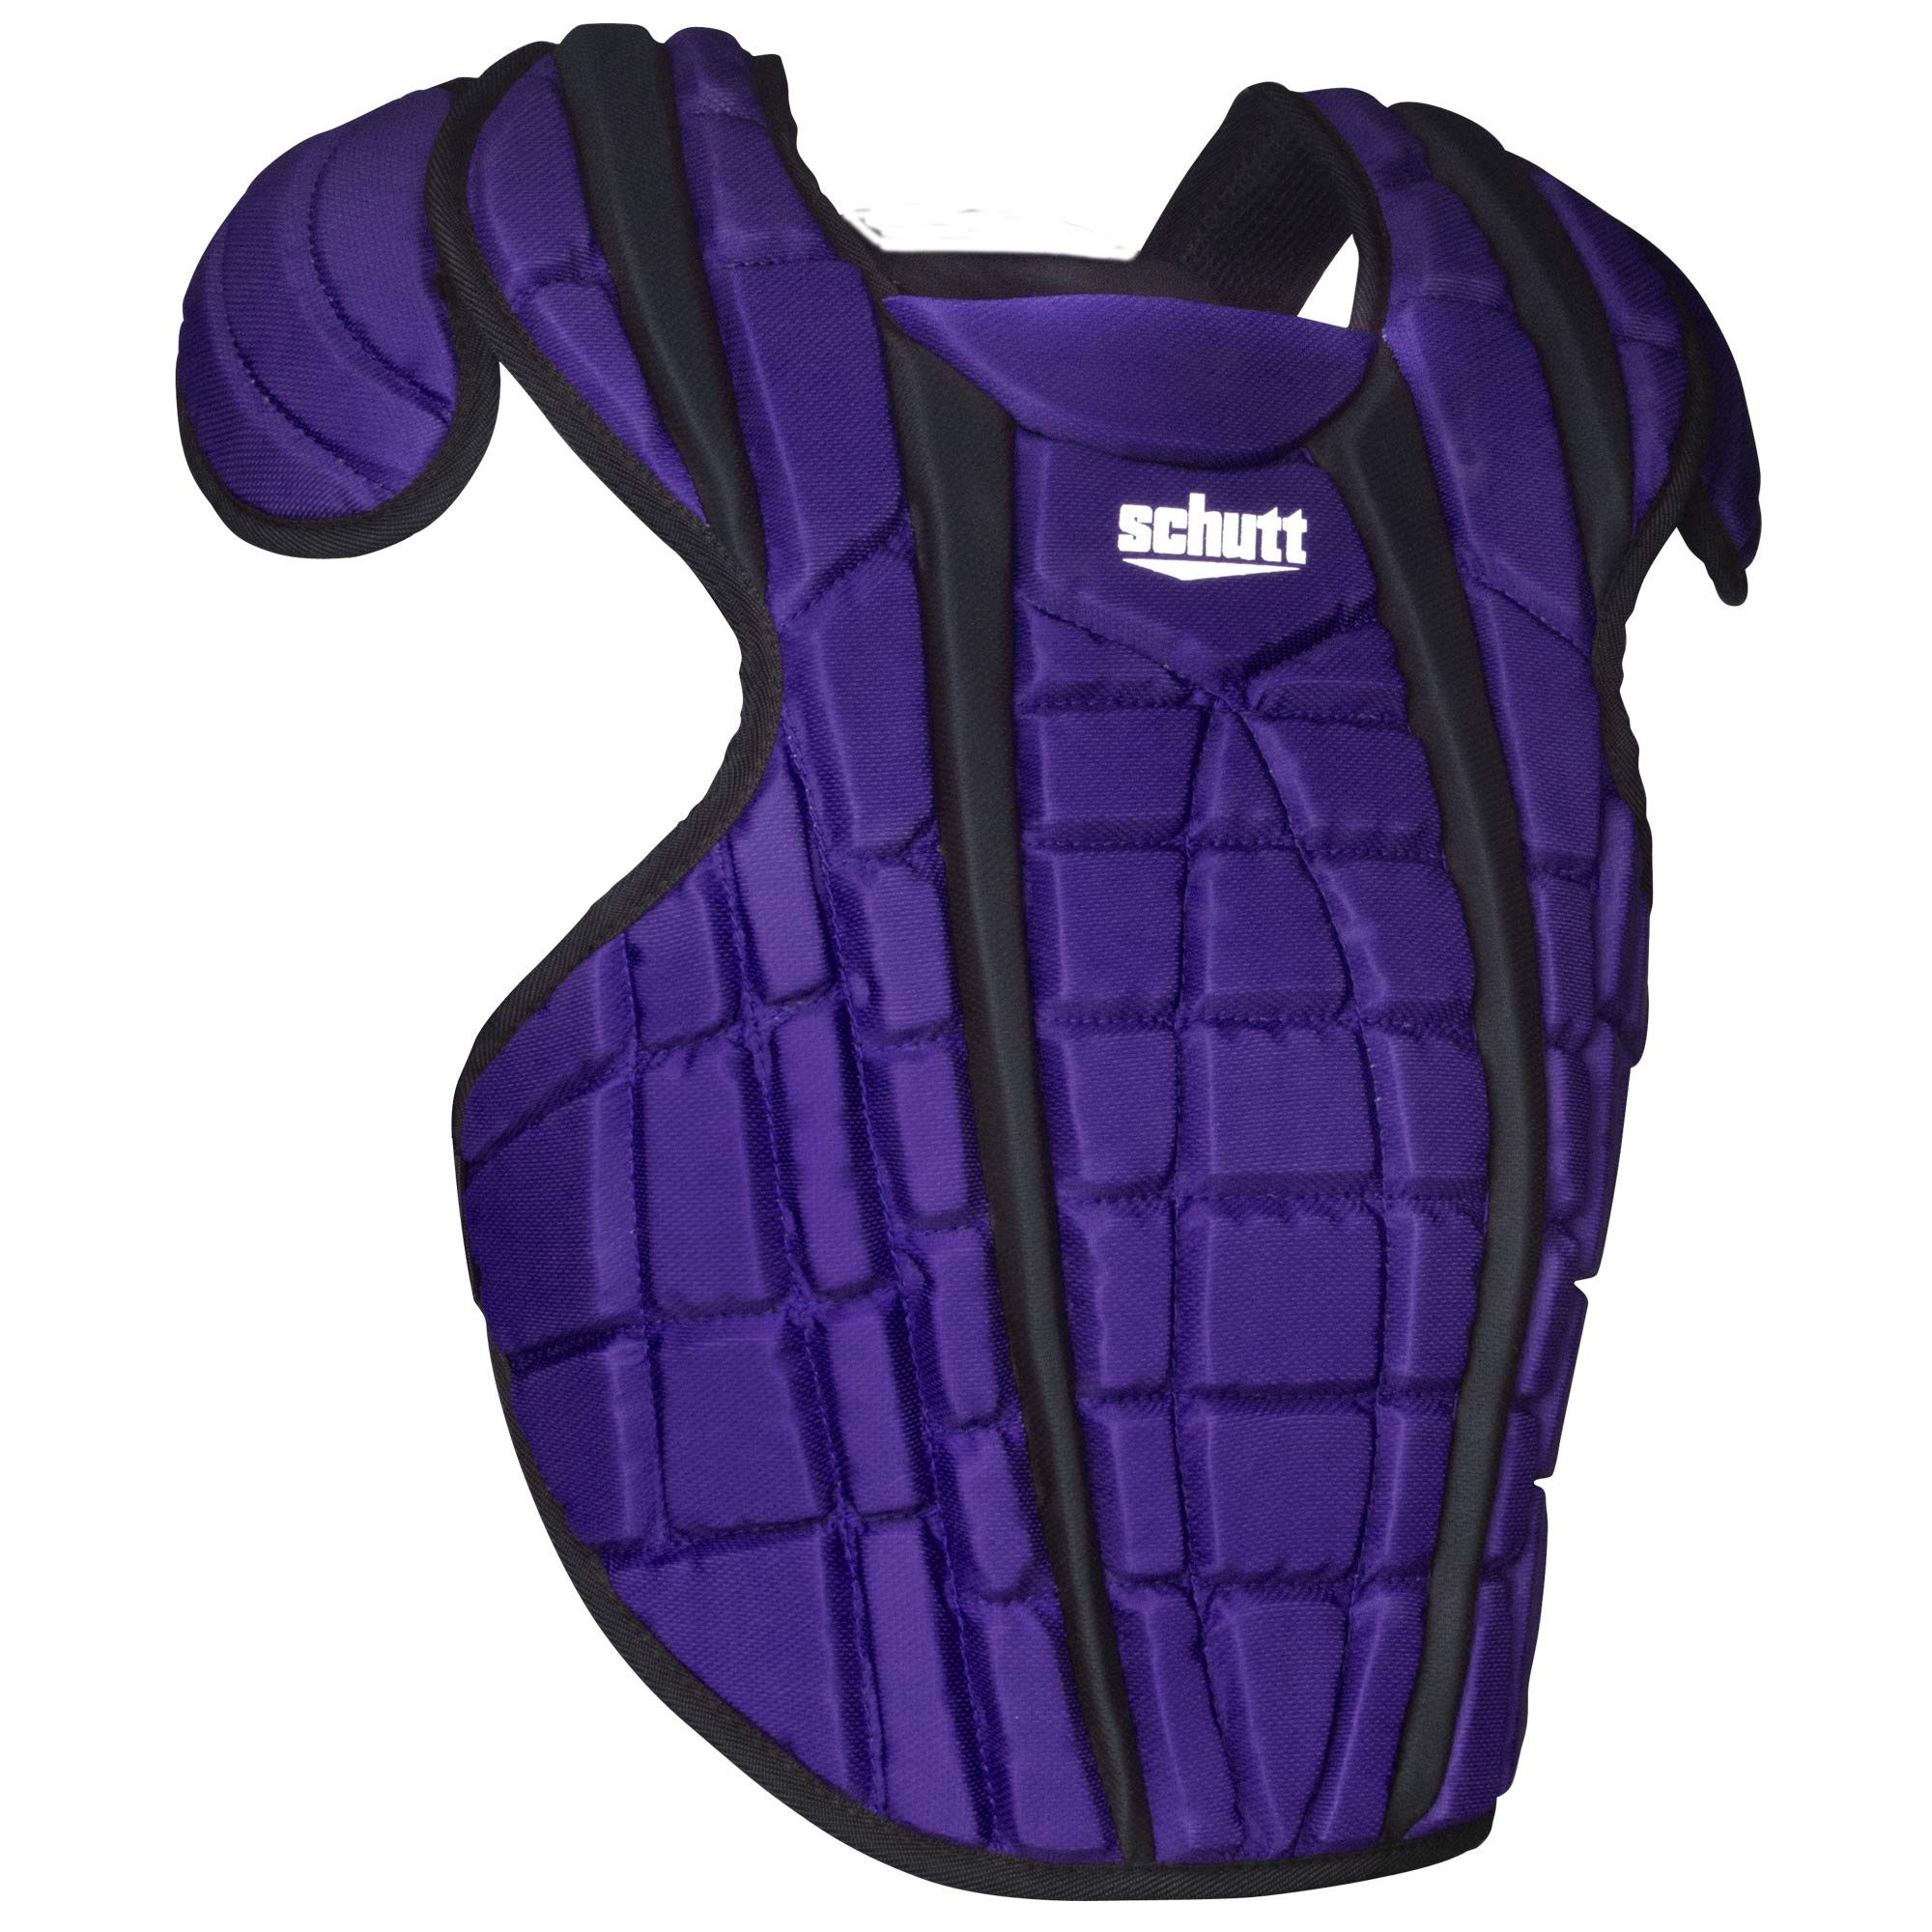 Schutt Sports Scorpion 2.0 Catcher's Chest Protector, Purple, 12'' by Schutt